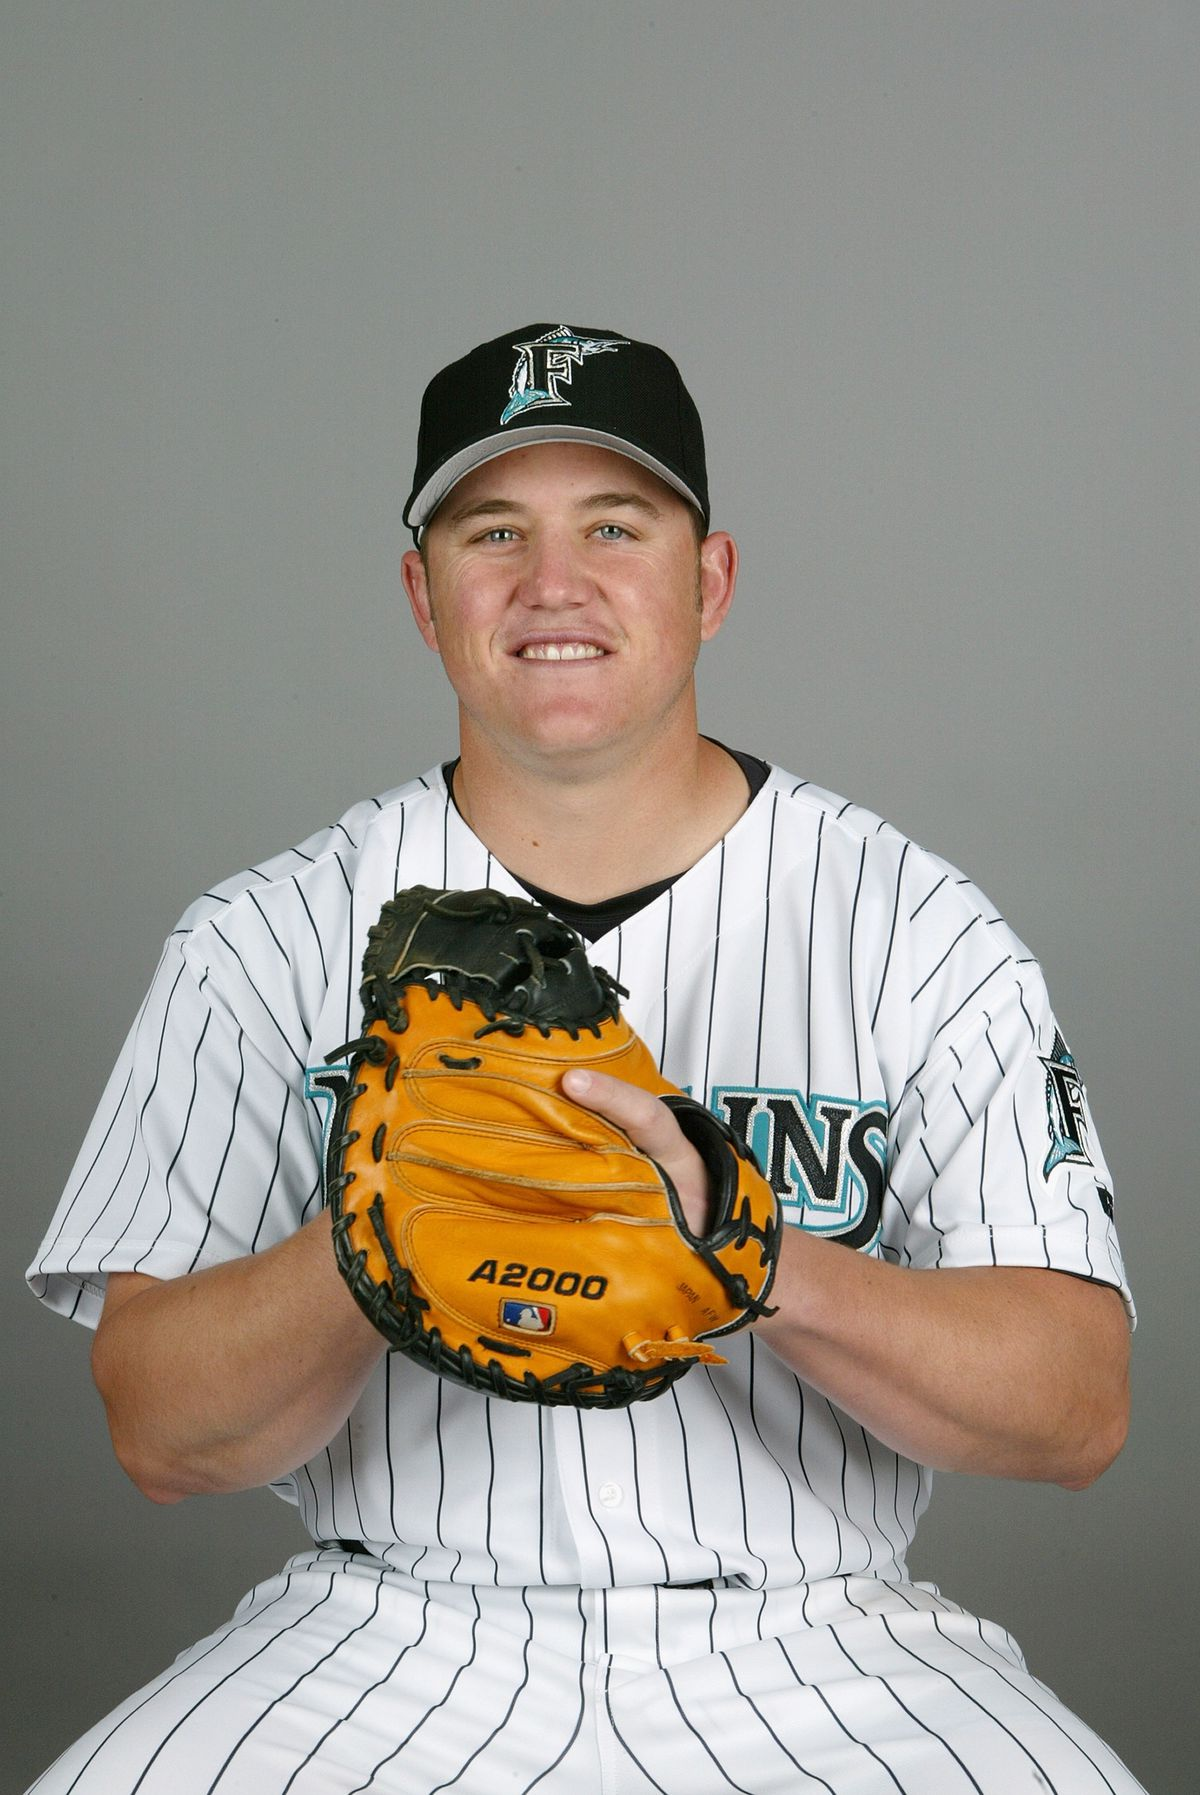 Marlins Photo Day